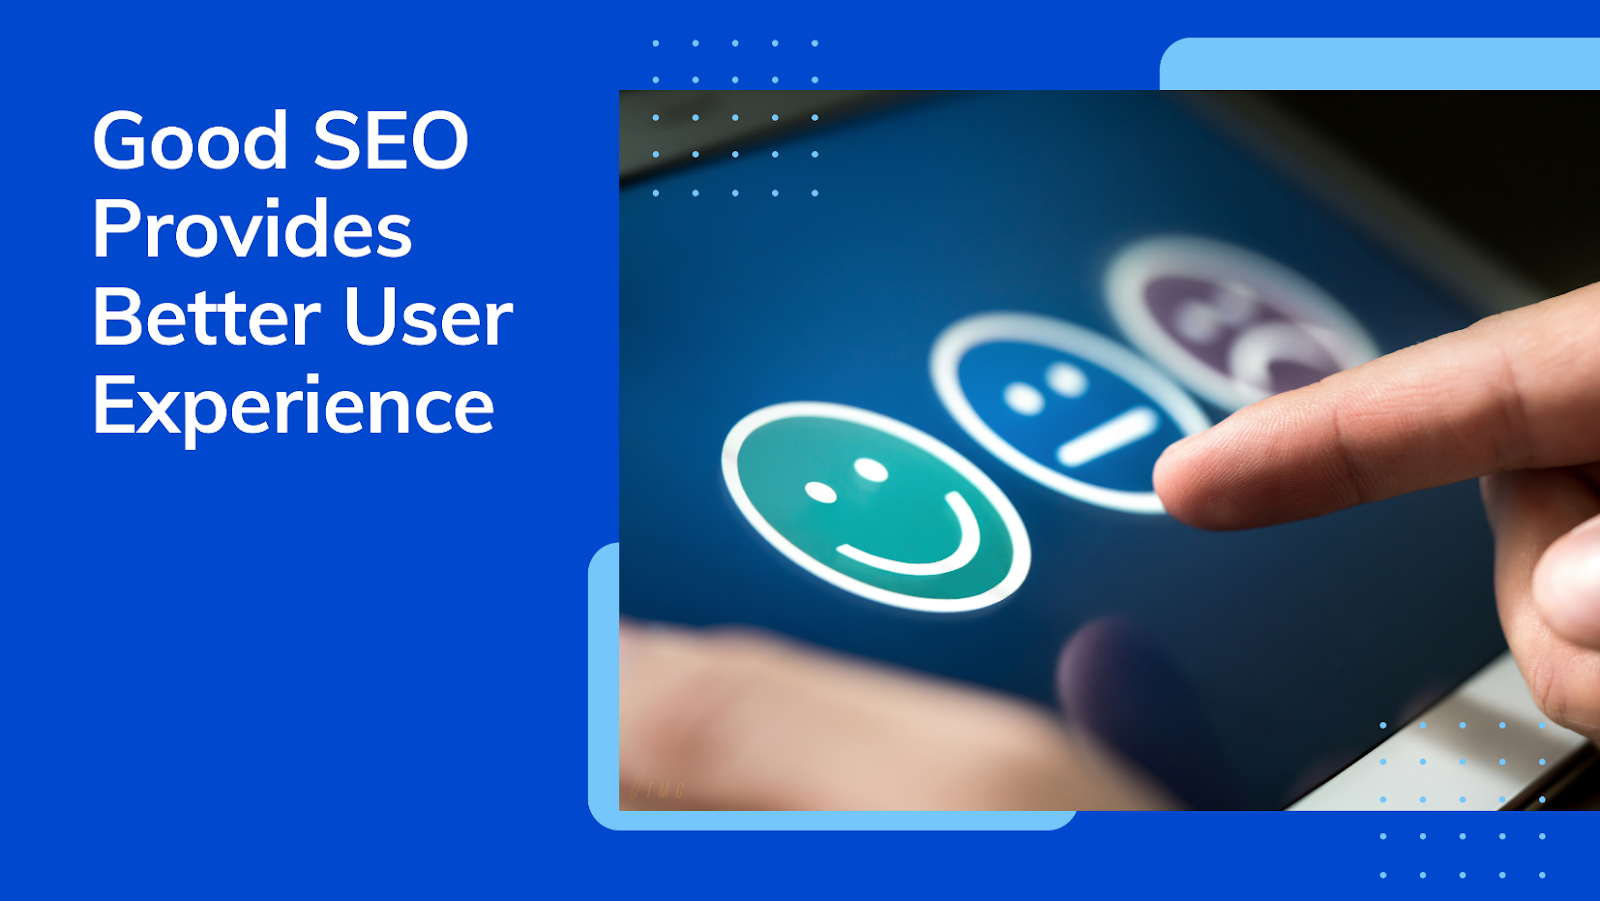 Good SEO Provides Better User Experience